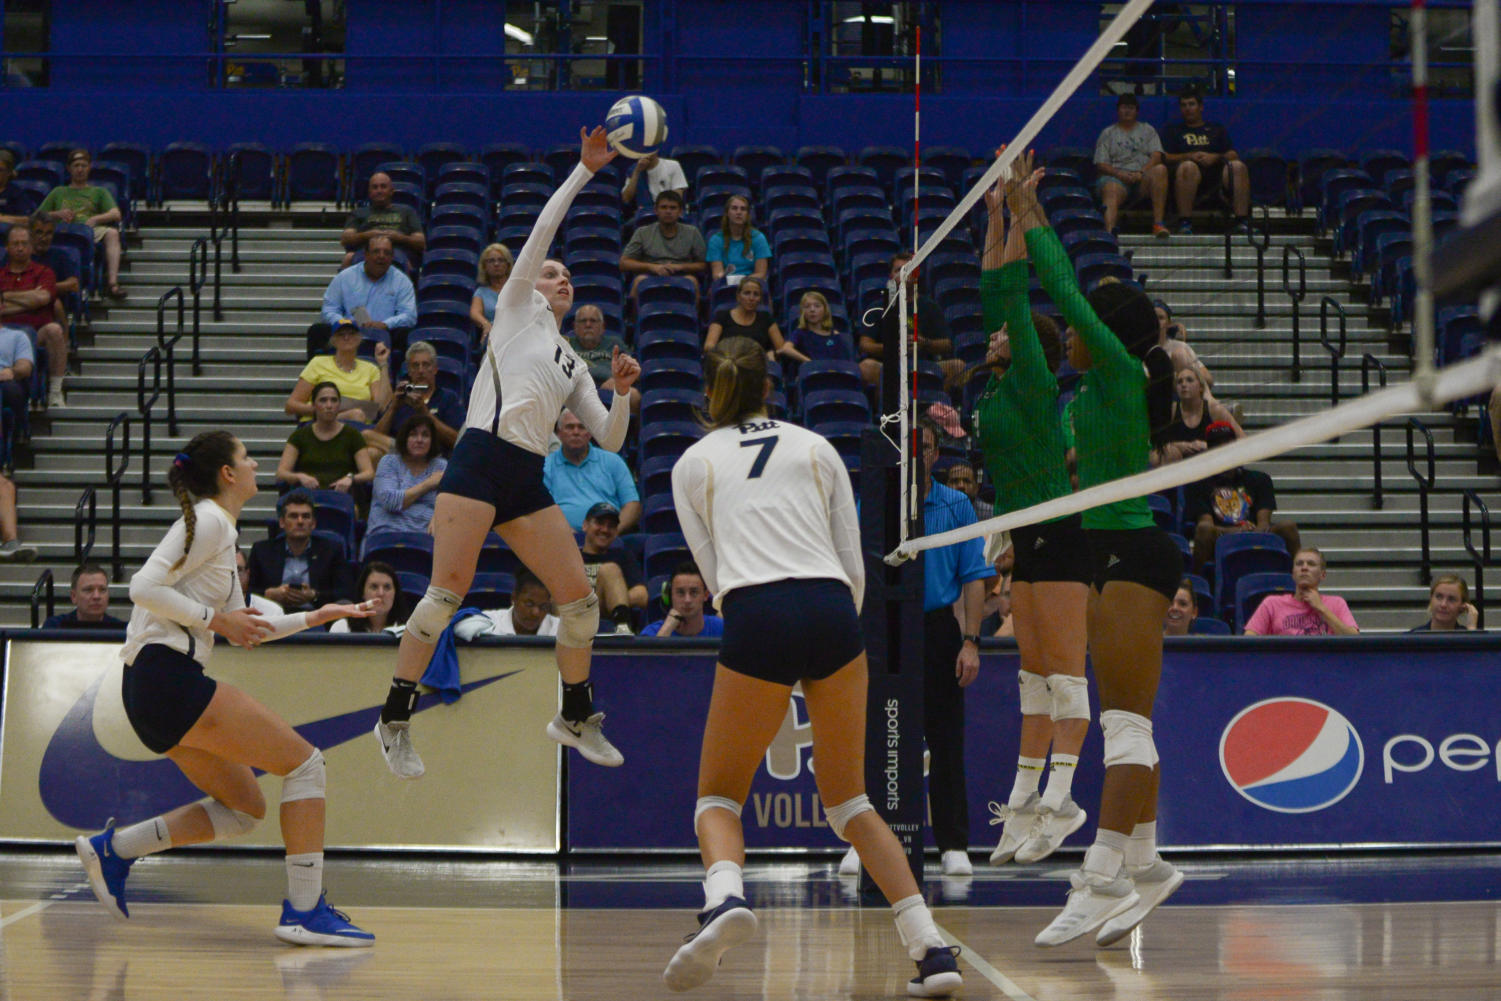 Redshirt junior Stephanie Williams spikes the ball during Pitt's 3-0 victory over North Dakota Tuesday night. (Photo by David Donlick | Staff Photographer)